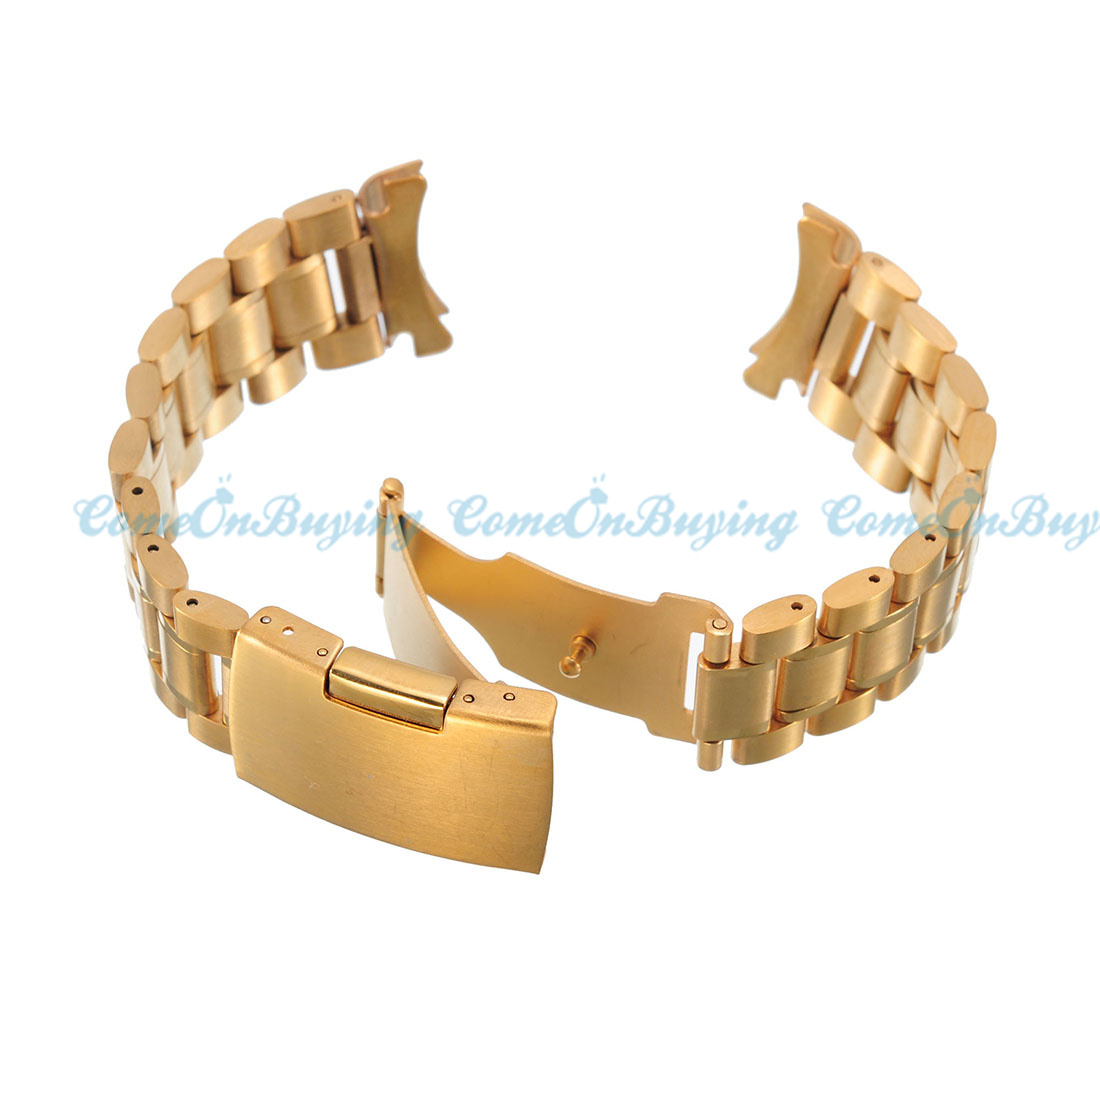 Gold Wrist Bracelet: New Silver Gold Replacement Stainless Steel Watch Band